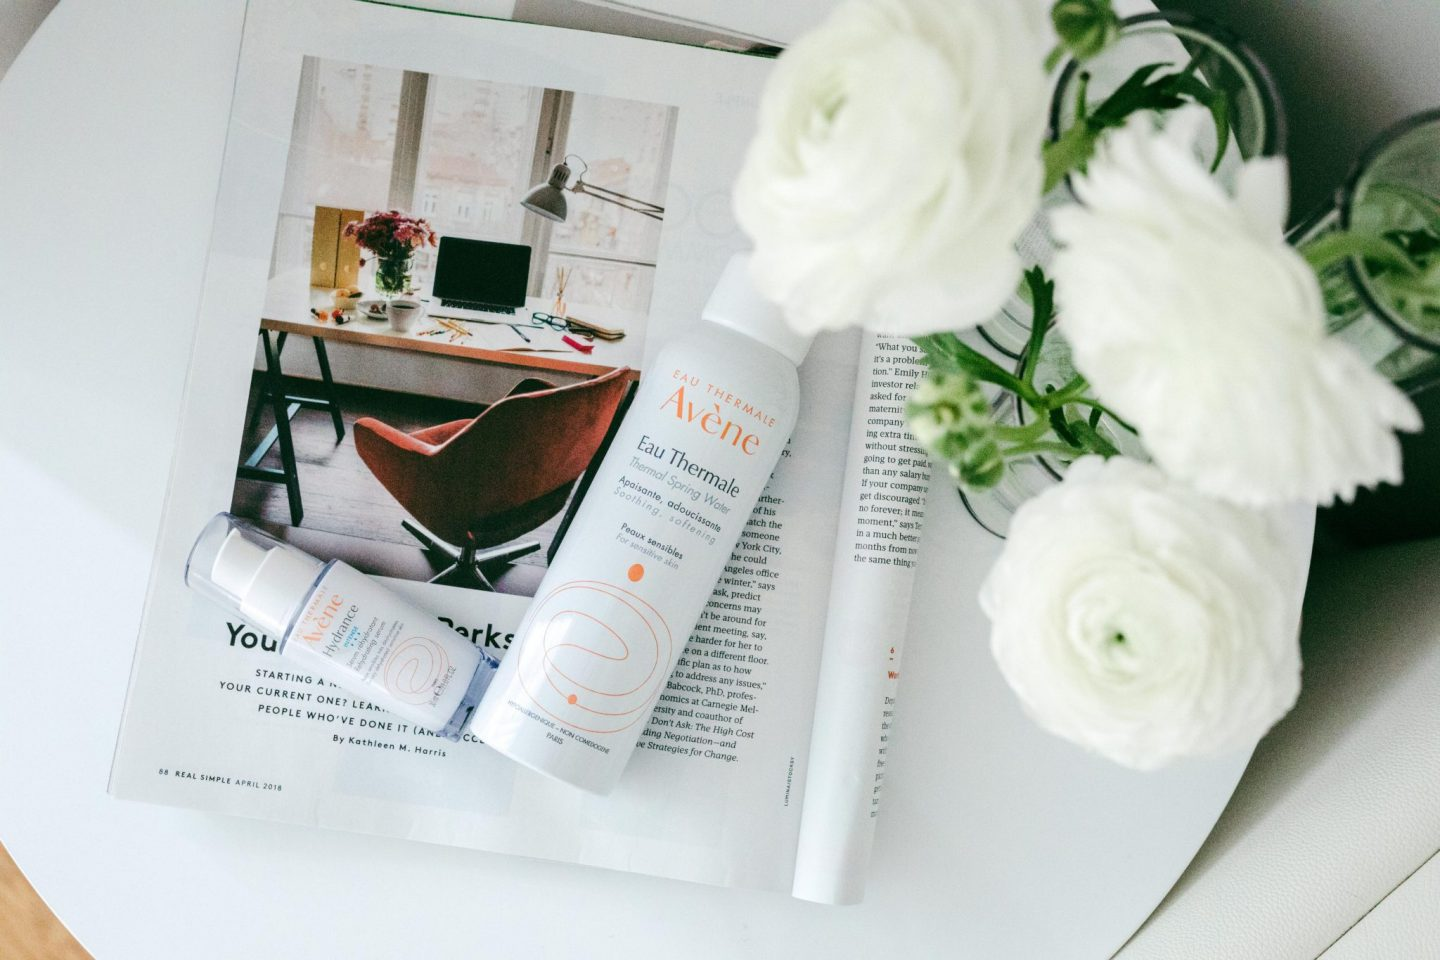 avene eau thermale & hydrance (1 of 3)